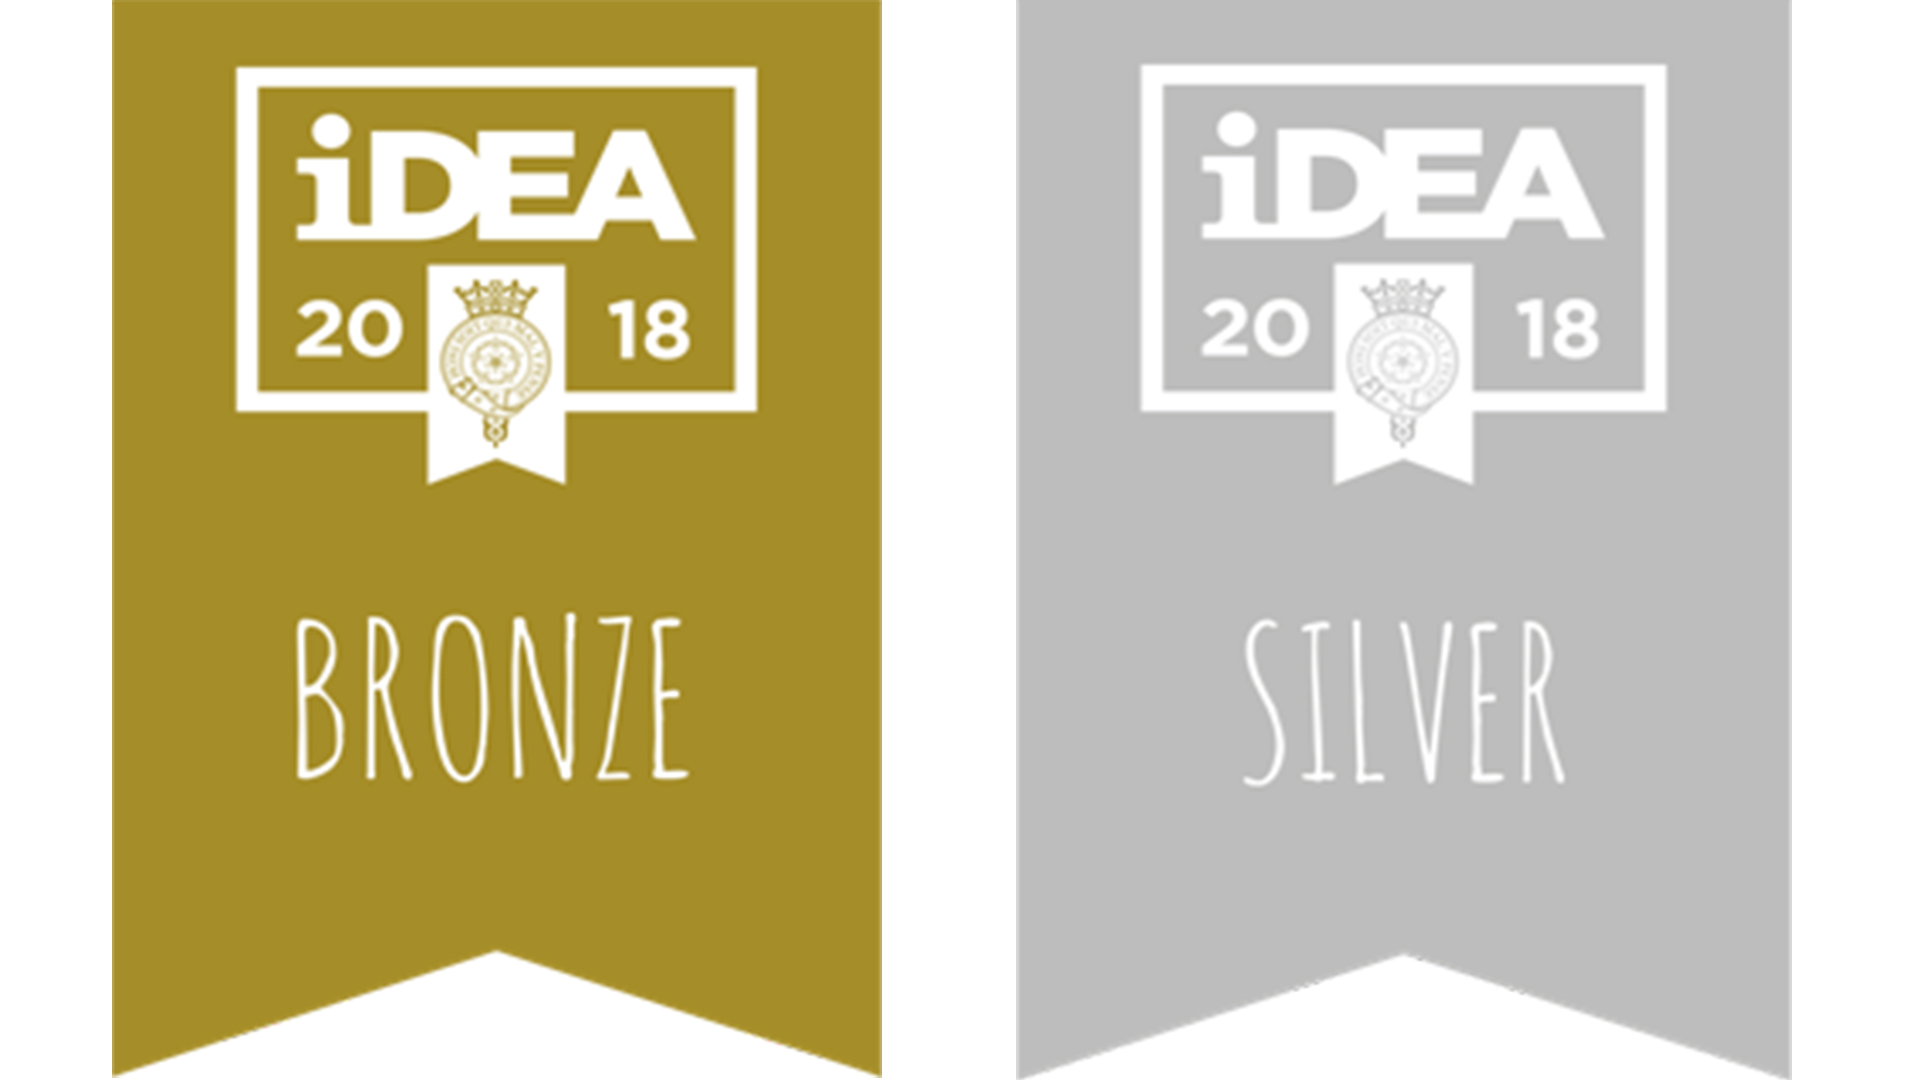 Silver iDEA award launched – take your digital skills to a new level